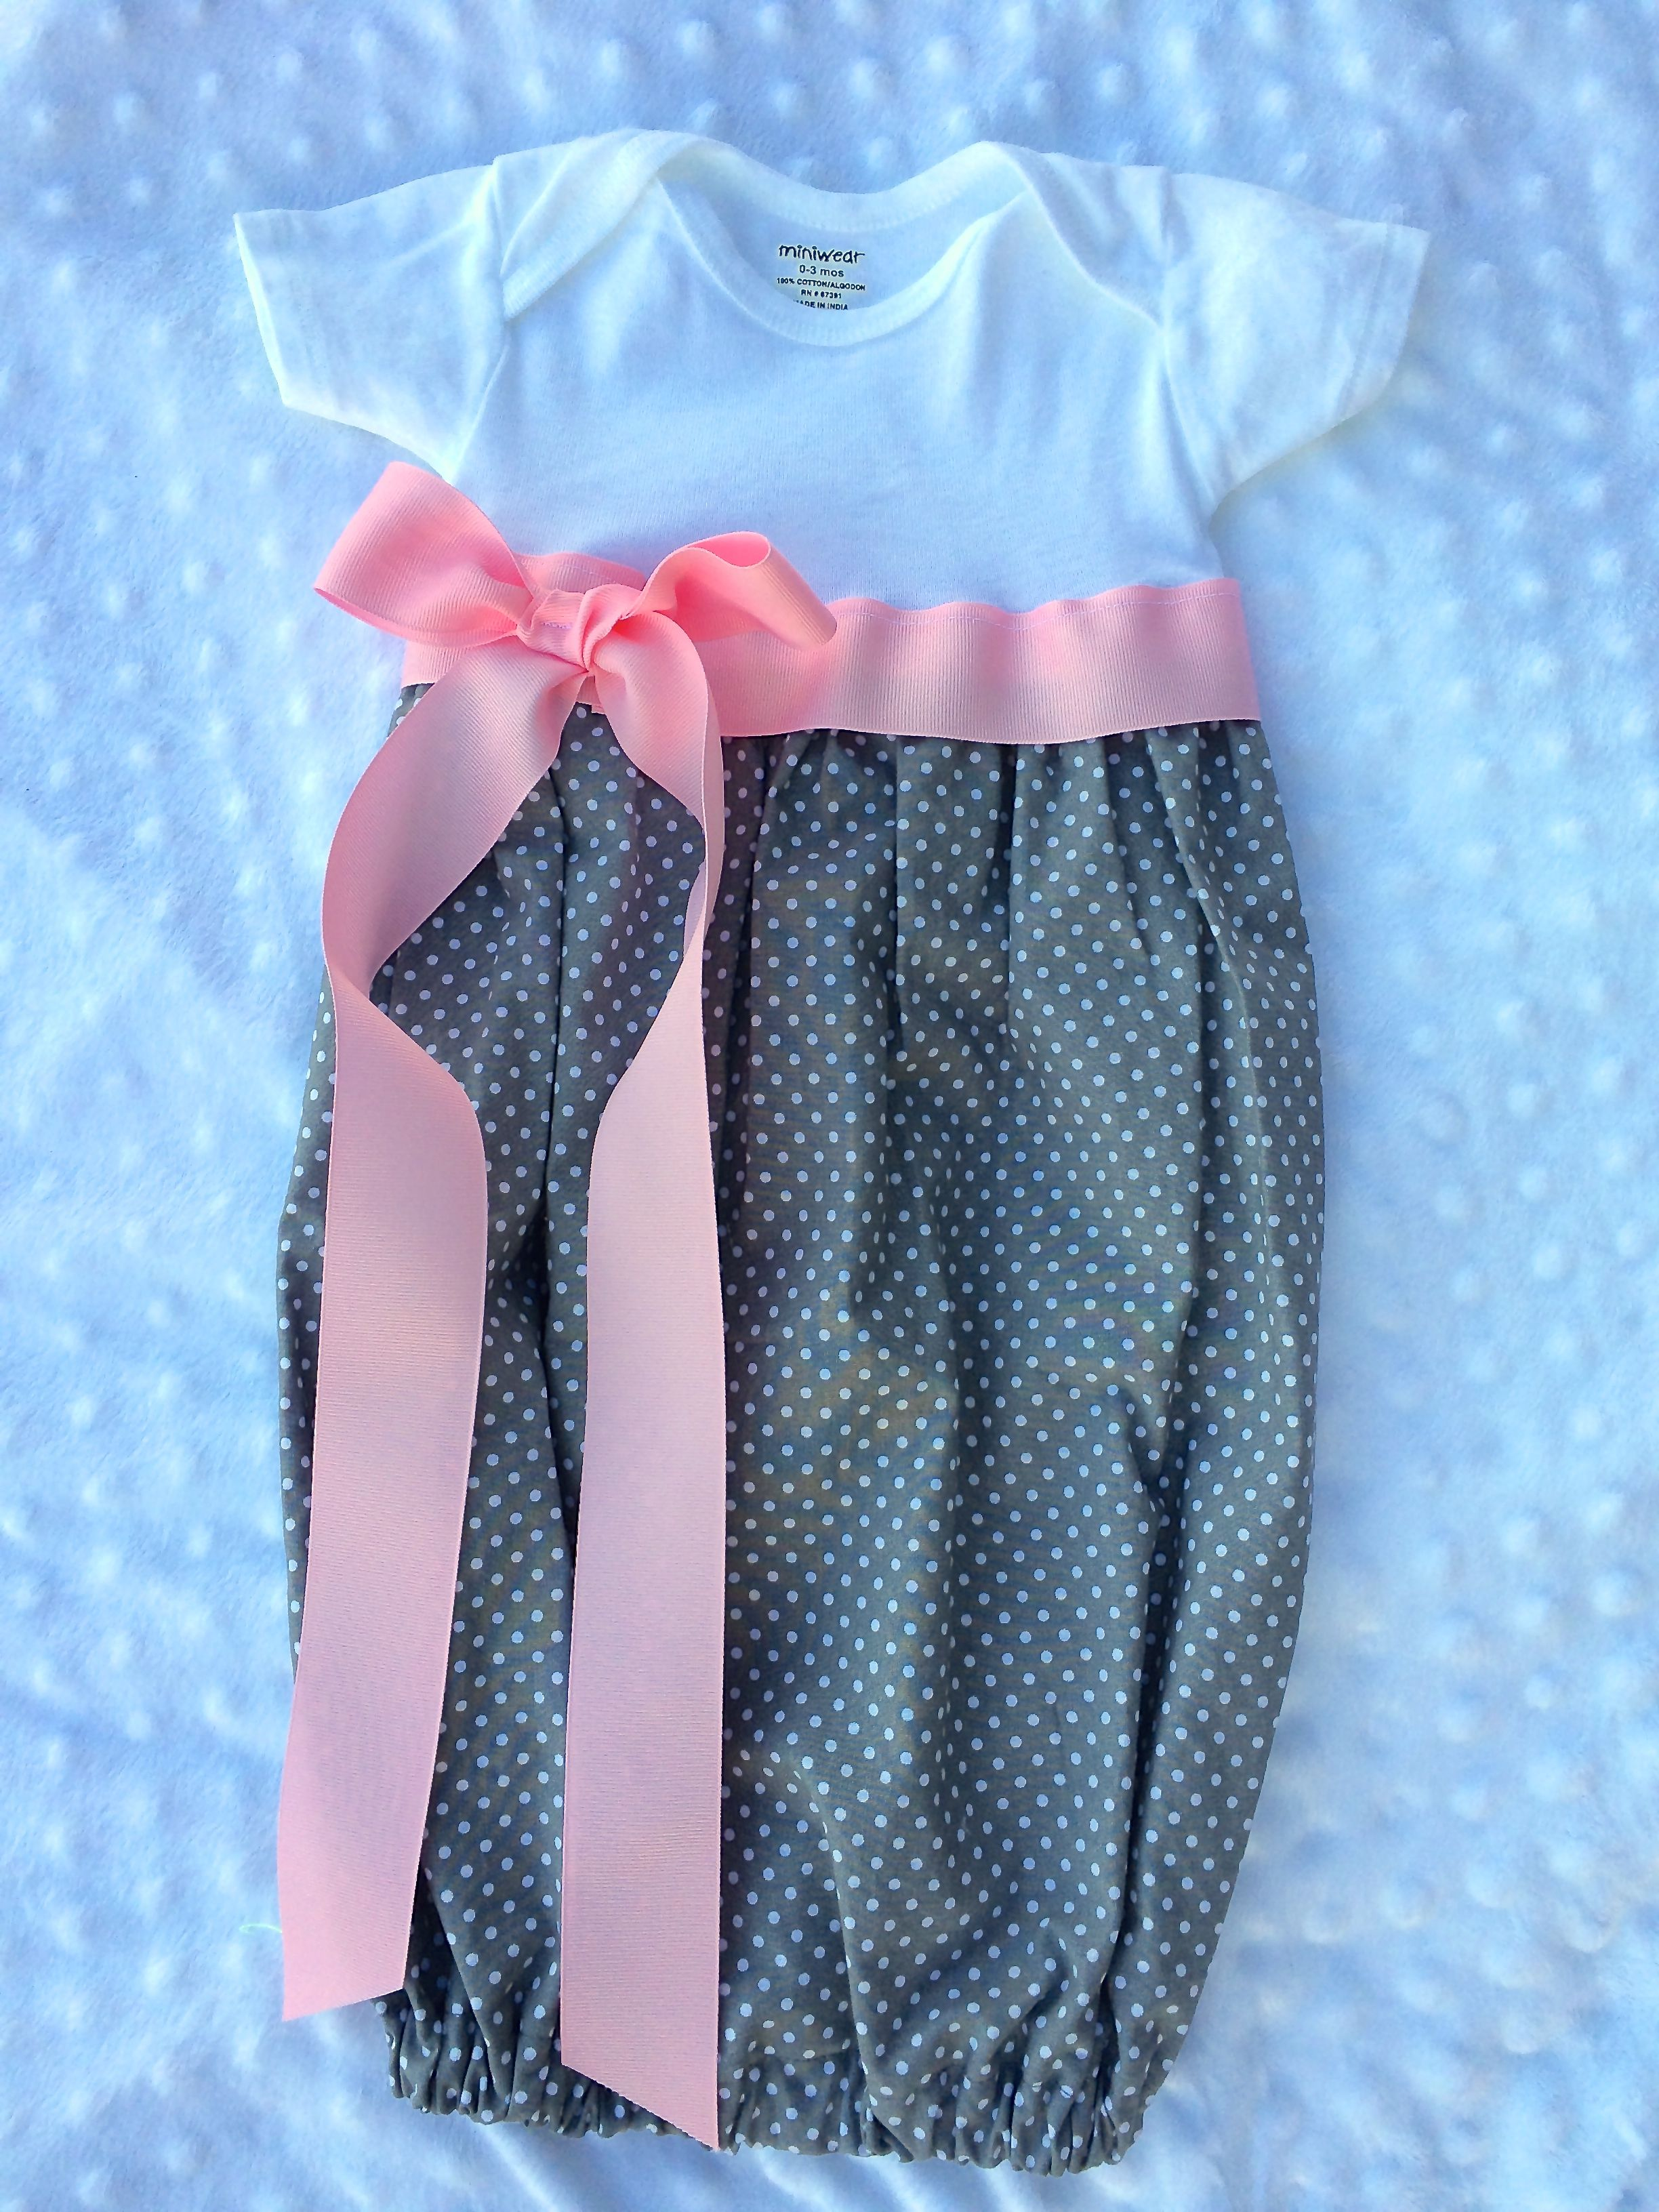 Baby layette gown | Baby | Pinterest | Baby girl gowns, Layette and ...